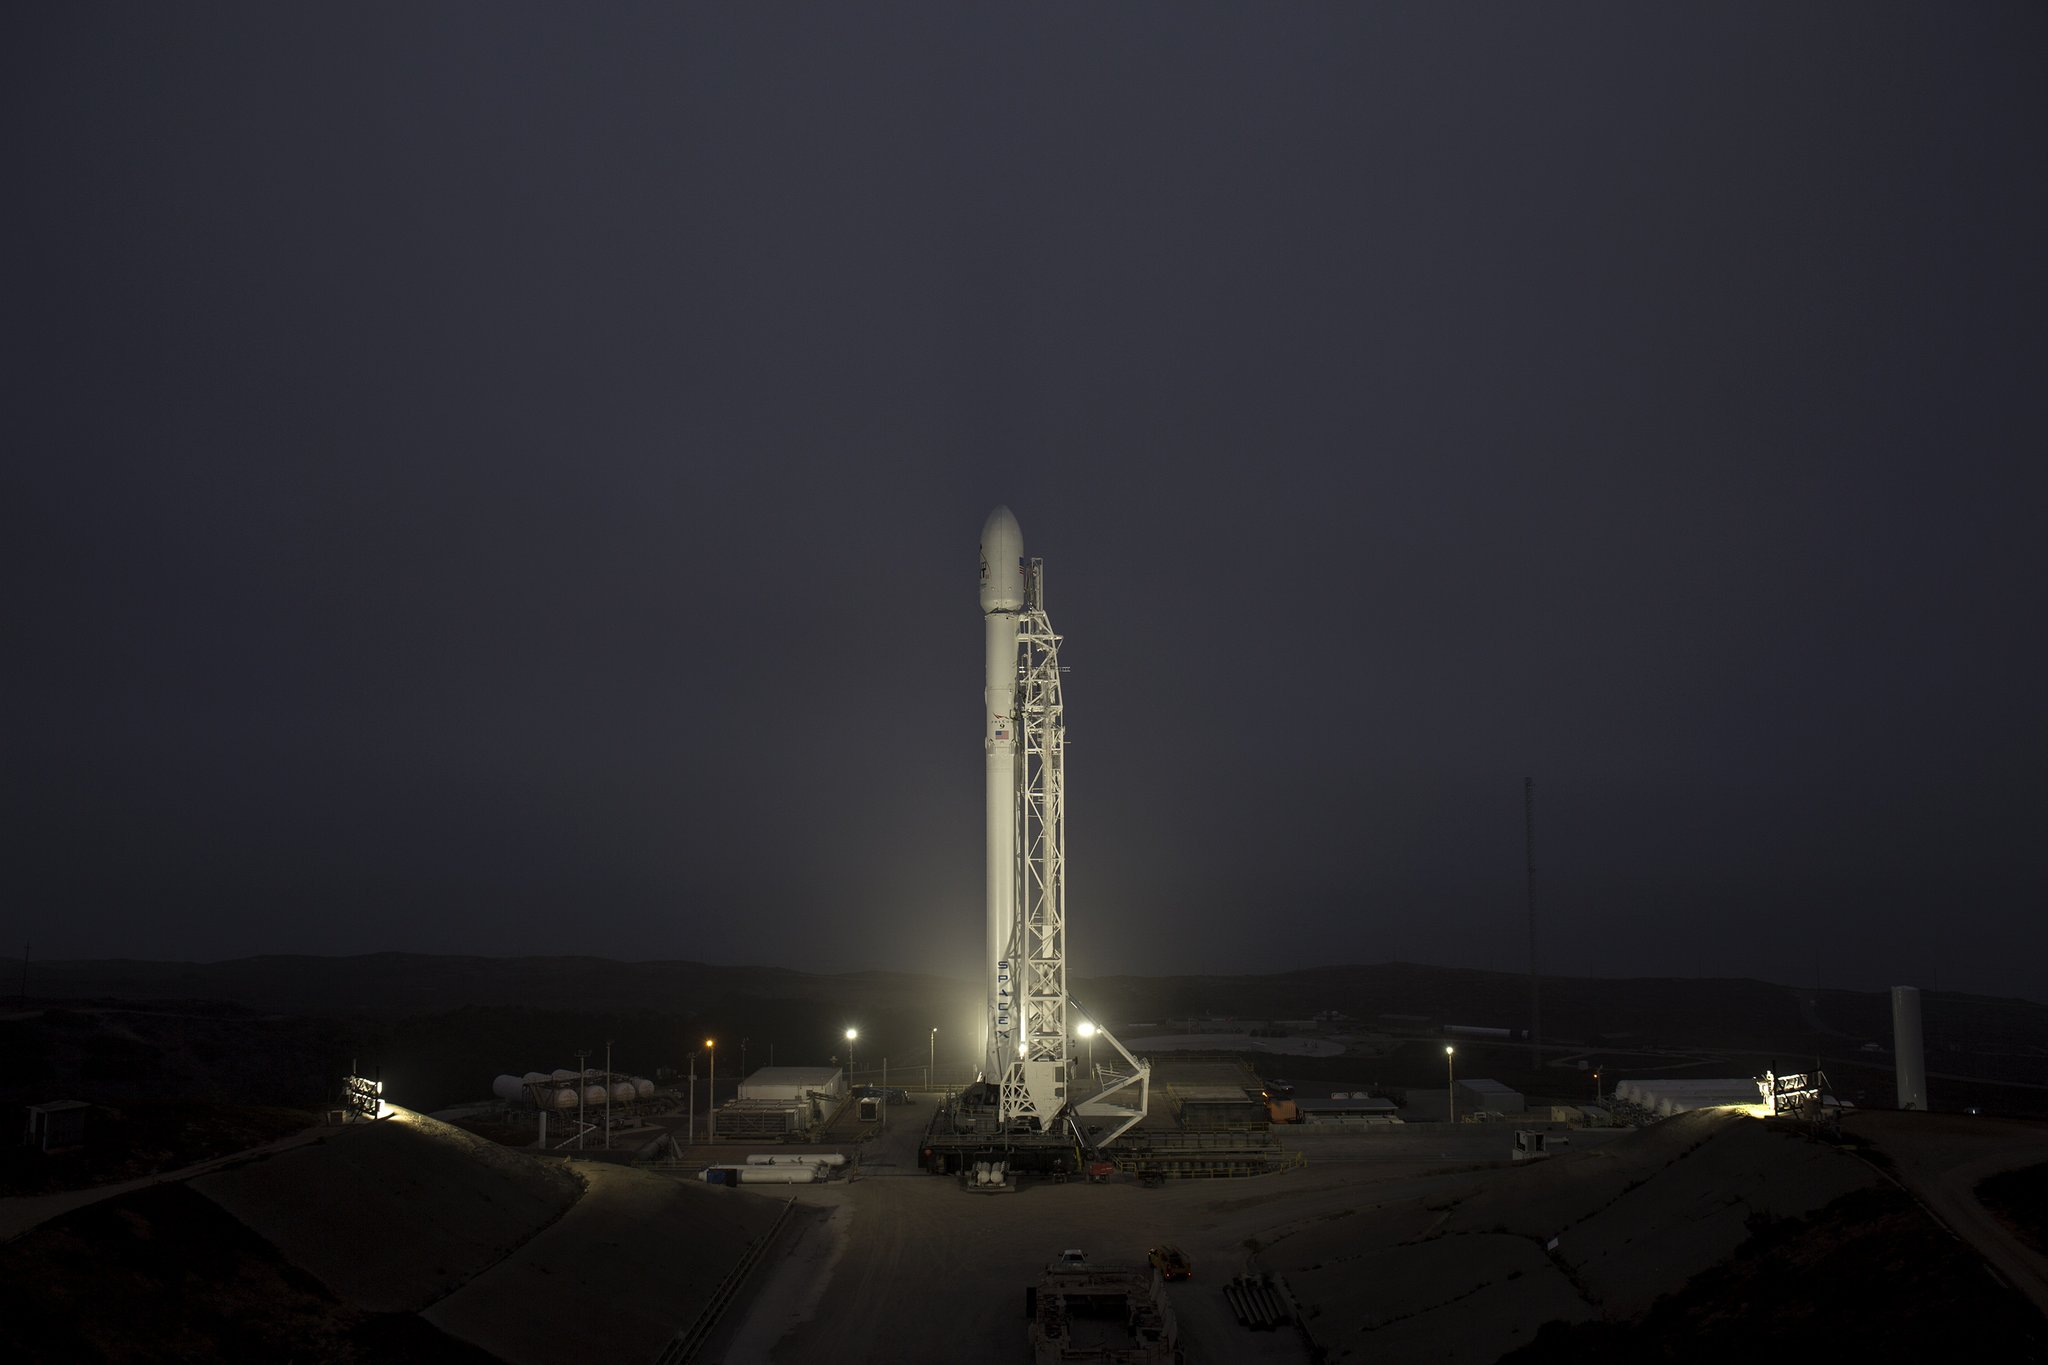 Watch SpaceX launch its Iridium-3 Falcon 9 mission live right here https://t.co/tTVEiO739D by @etherington https://t.co/KoaKIlMKlI